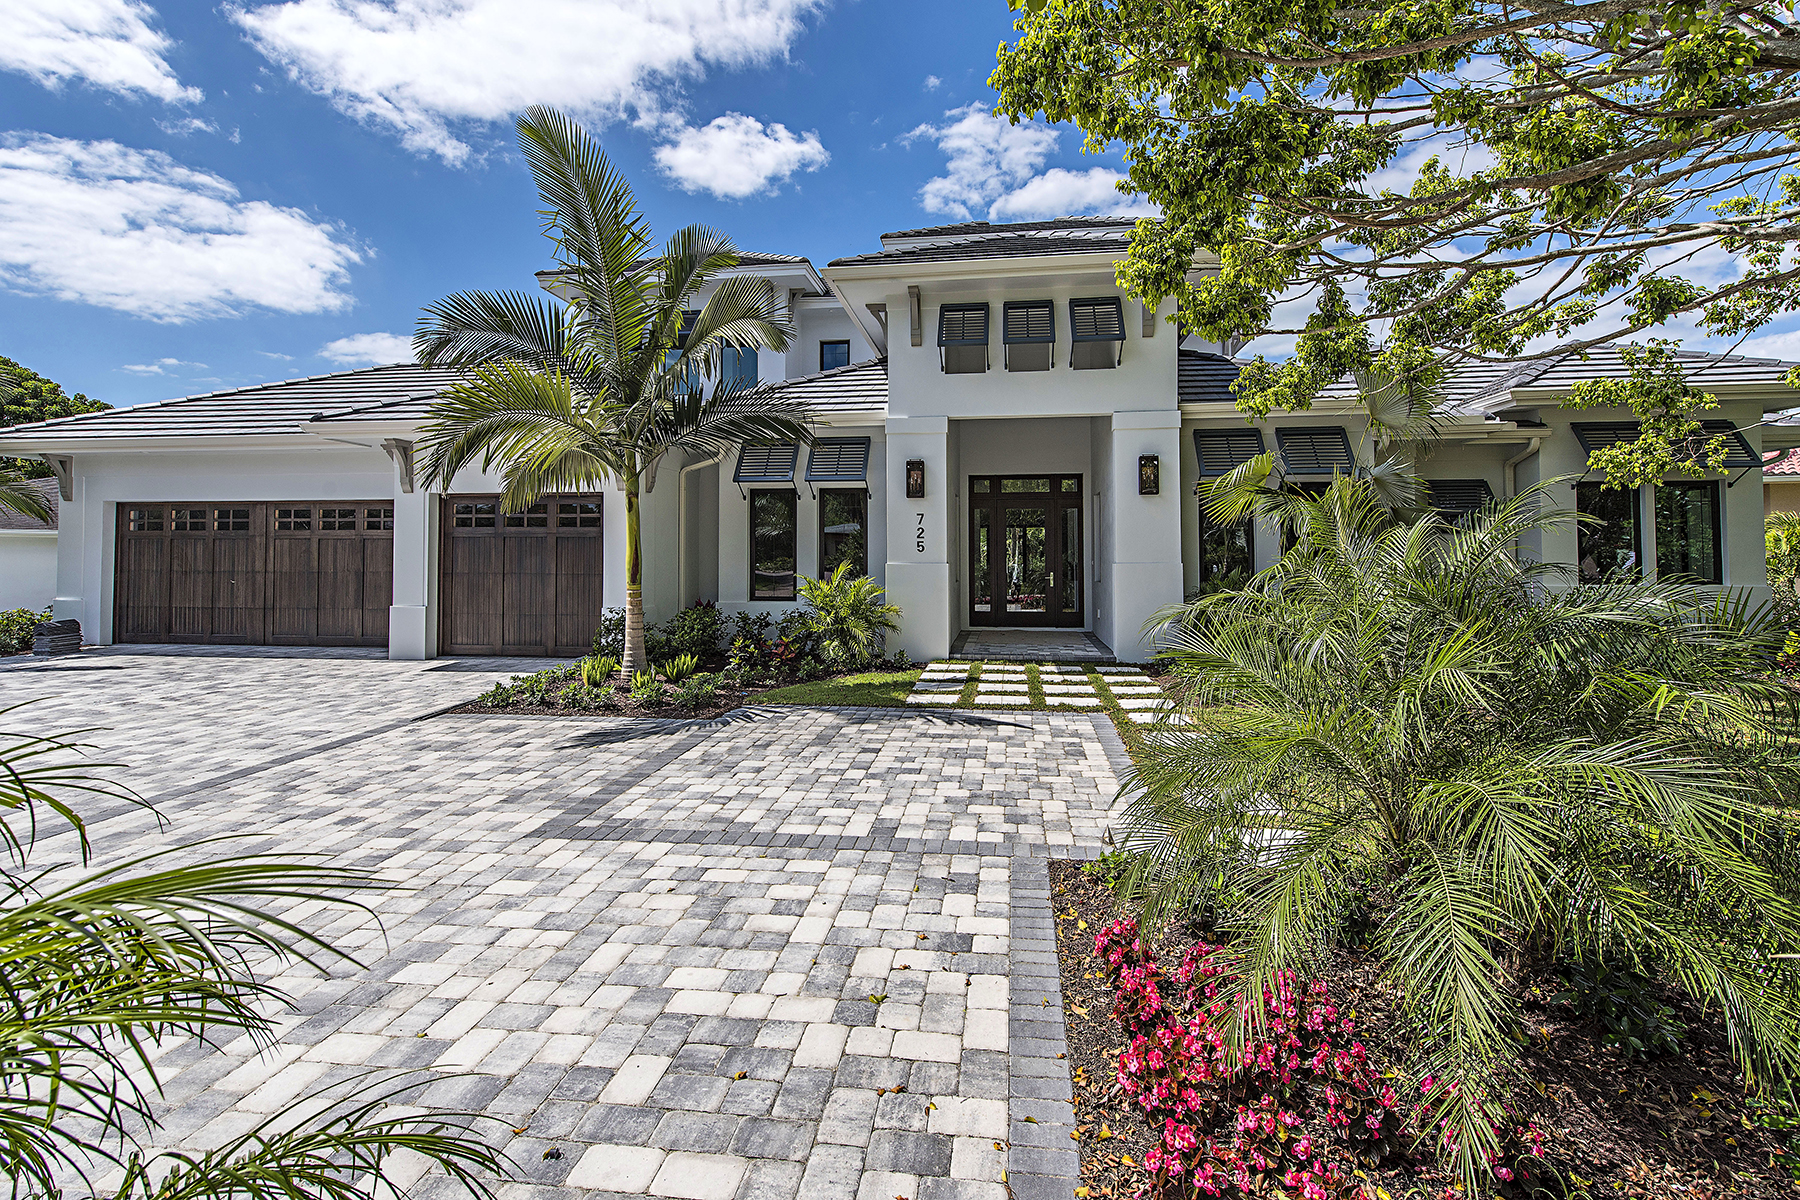 Single Family Home for Sale at MOORINGS 725 Regatta Rd, Naples, Florida 34103 United States